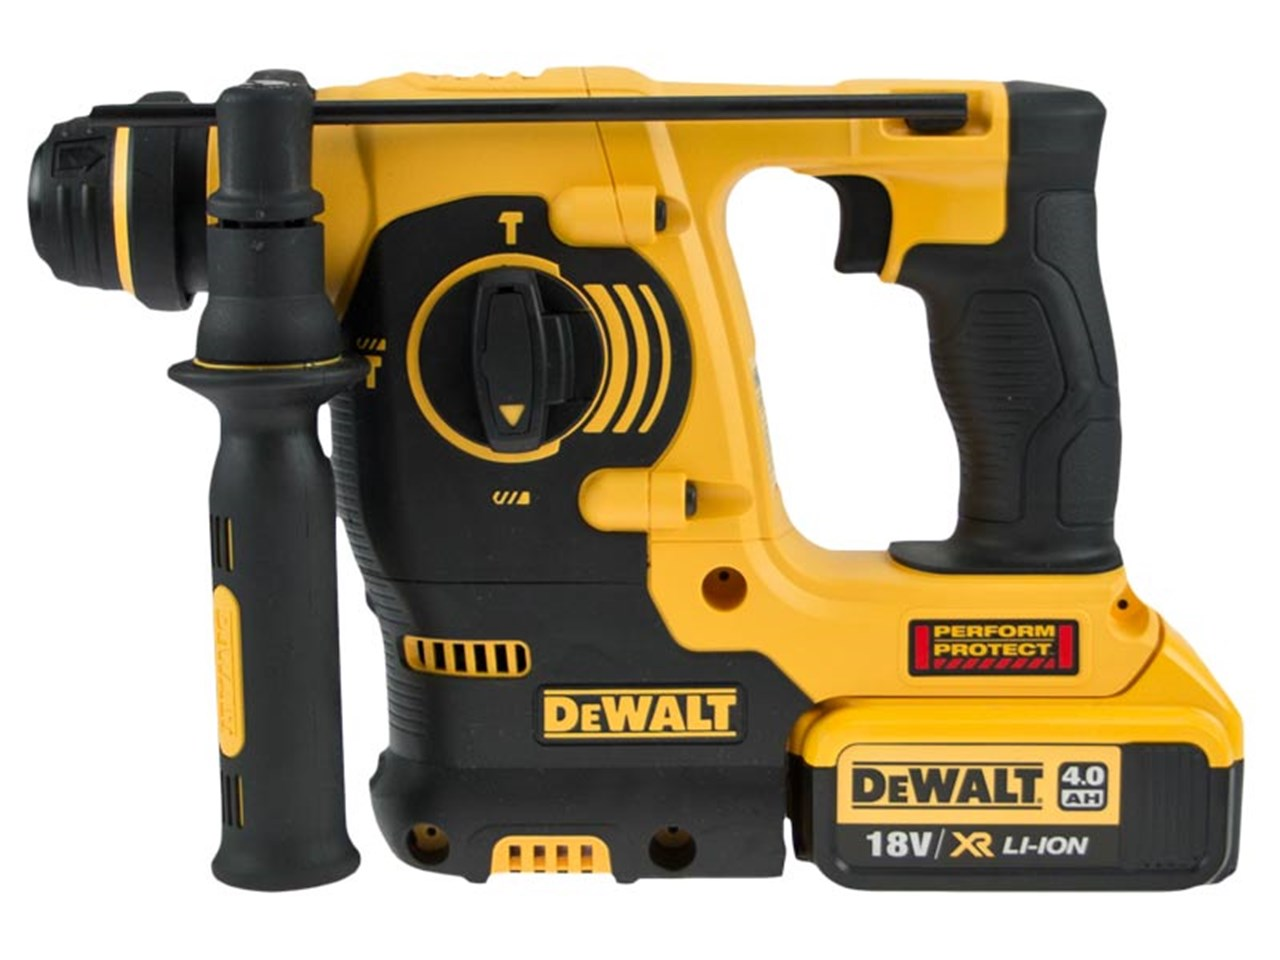 DeWalt DCH253M2 18v SDS Plus Rotary Hammer Drill Kit 2 x 4 0ah